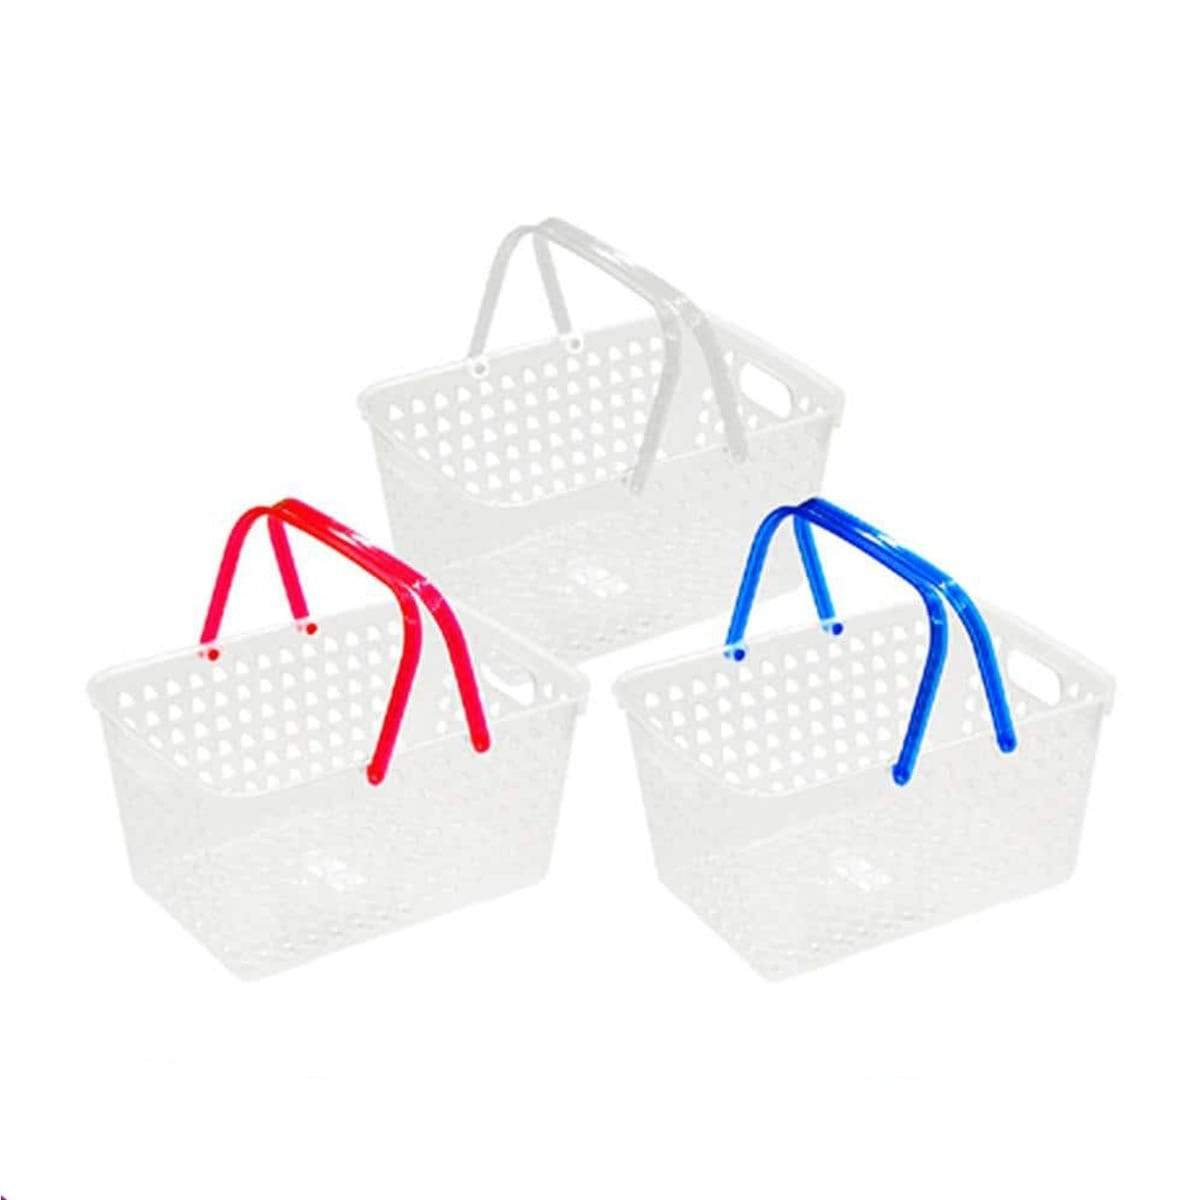 Japanese Plastic Color Basket With Handle 001